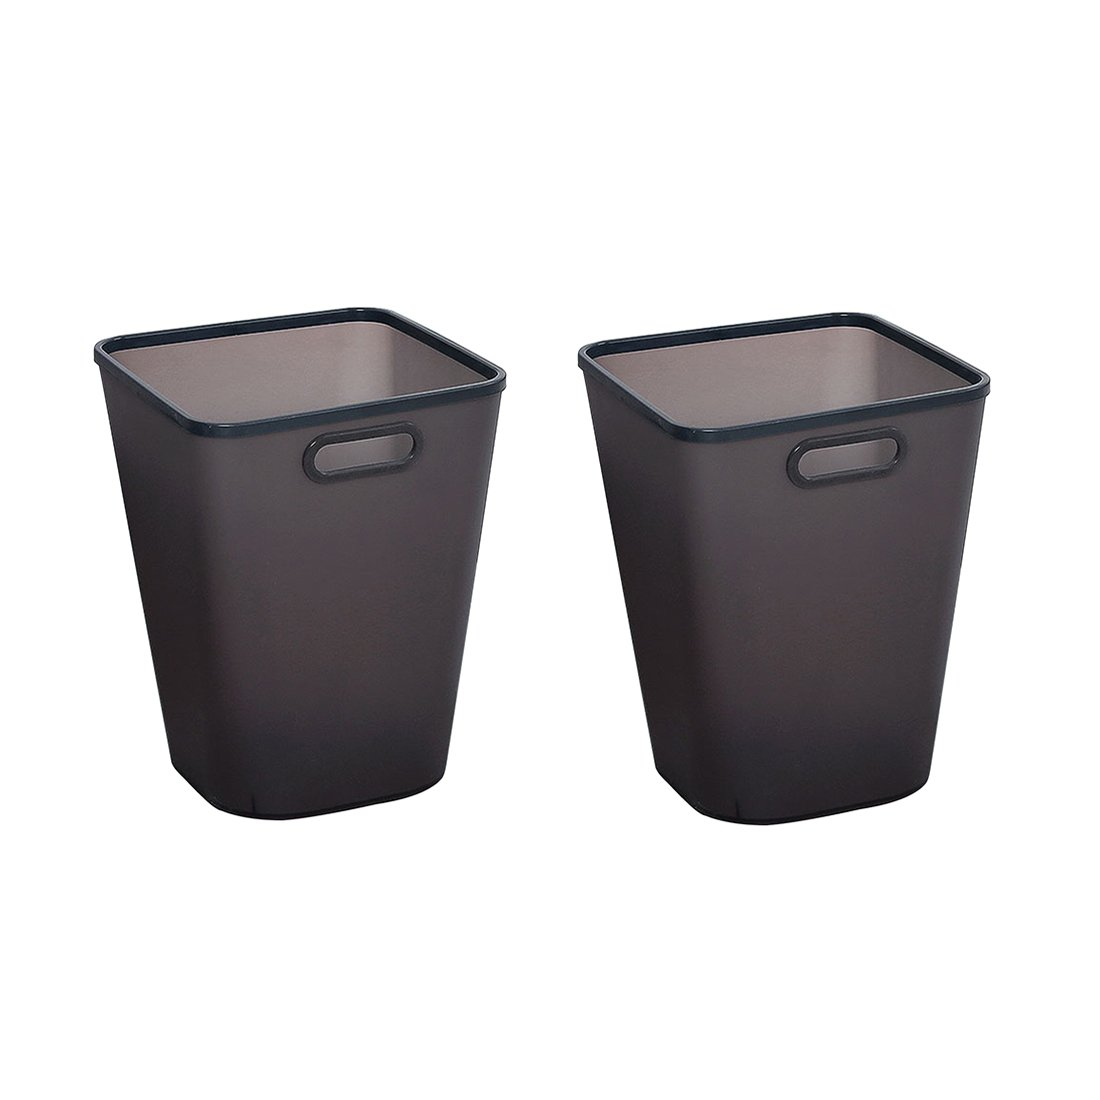 Lingxuinfo Large Capacity Trash Can Wastebasket Dustbin Garbage Bin for Home, Kitchen, Office - Pack of 2, Shatter-Resistant Plastic, Black